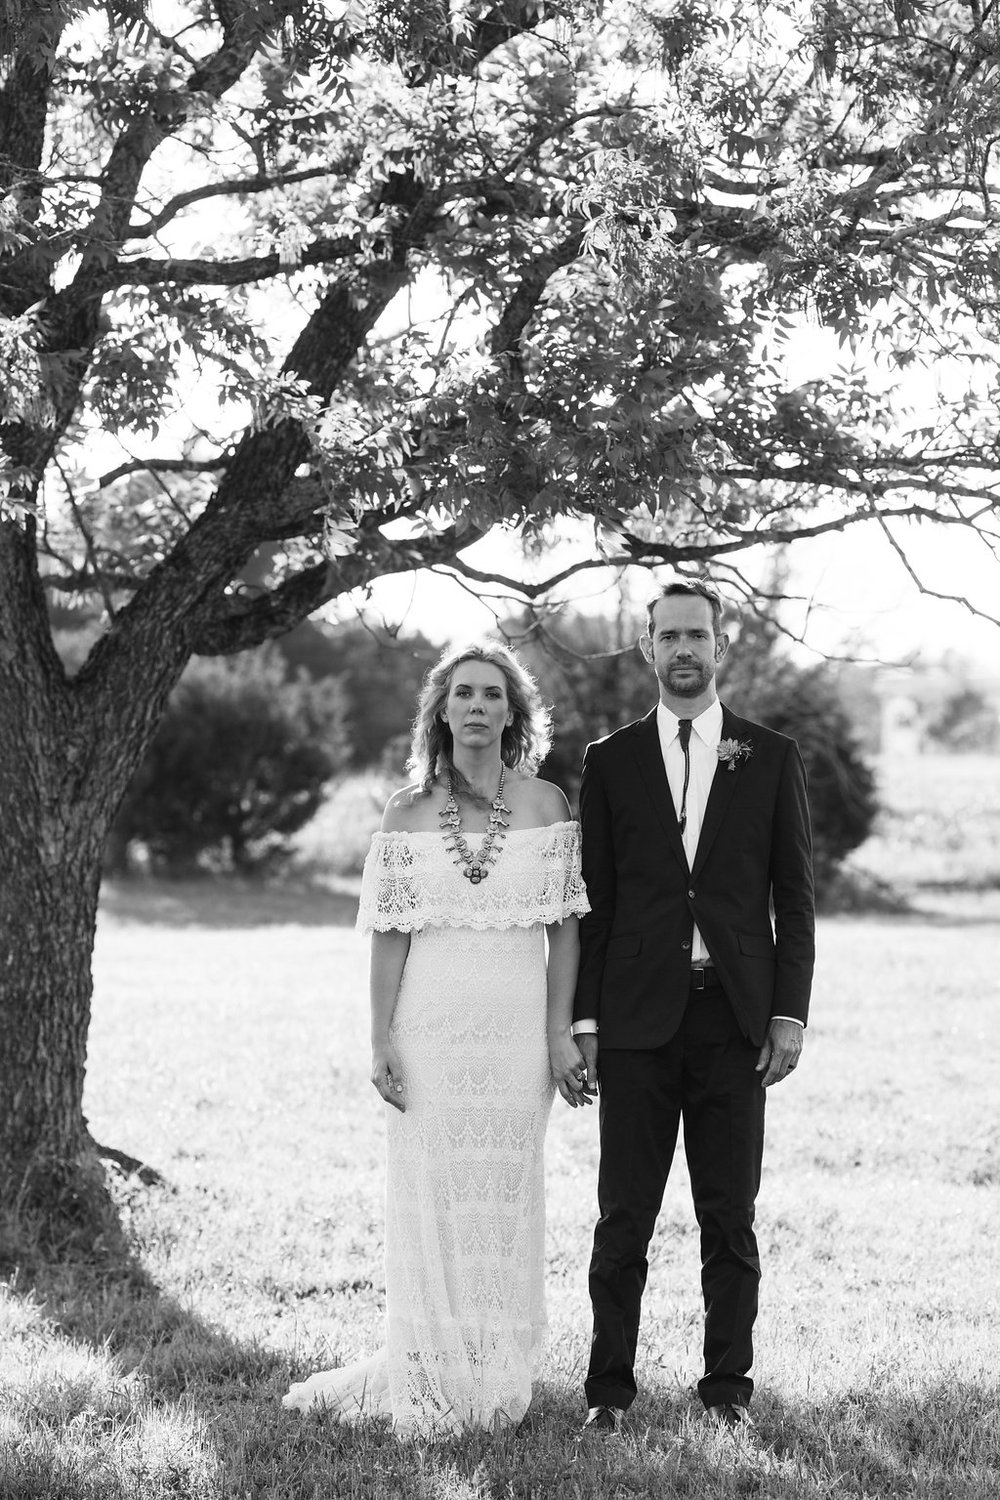 LIBBY & WESLEY   -  WE CONTRIBUTED: The Winnie Gown by Daughters of SimoneHow did you get engaged?